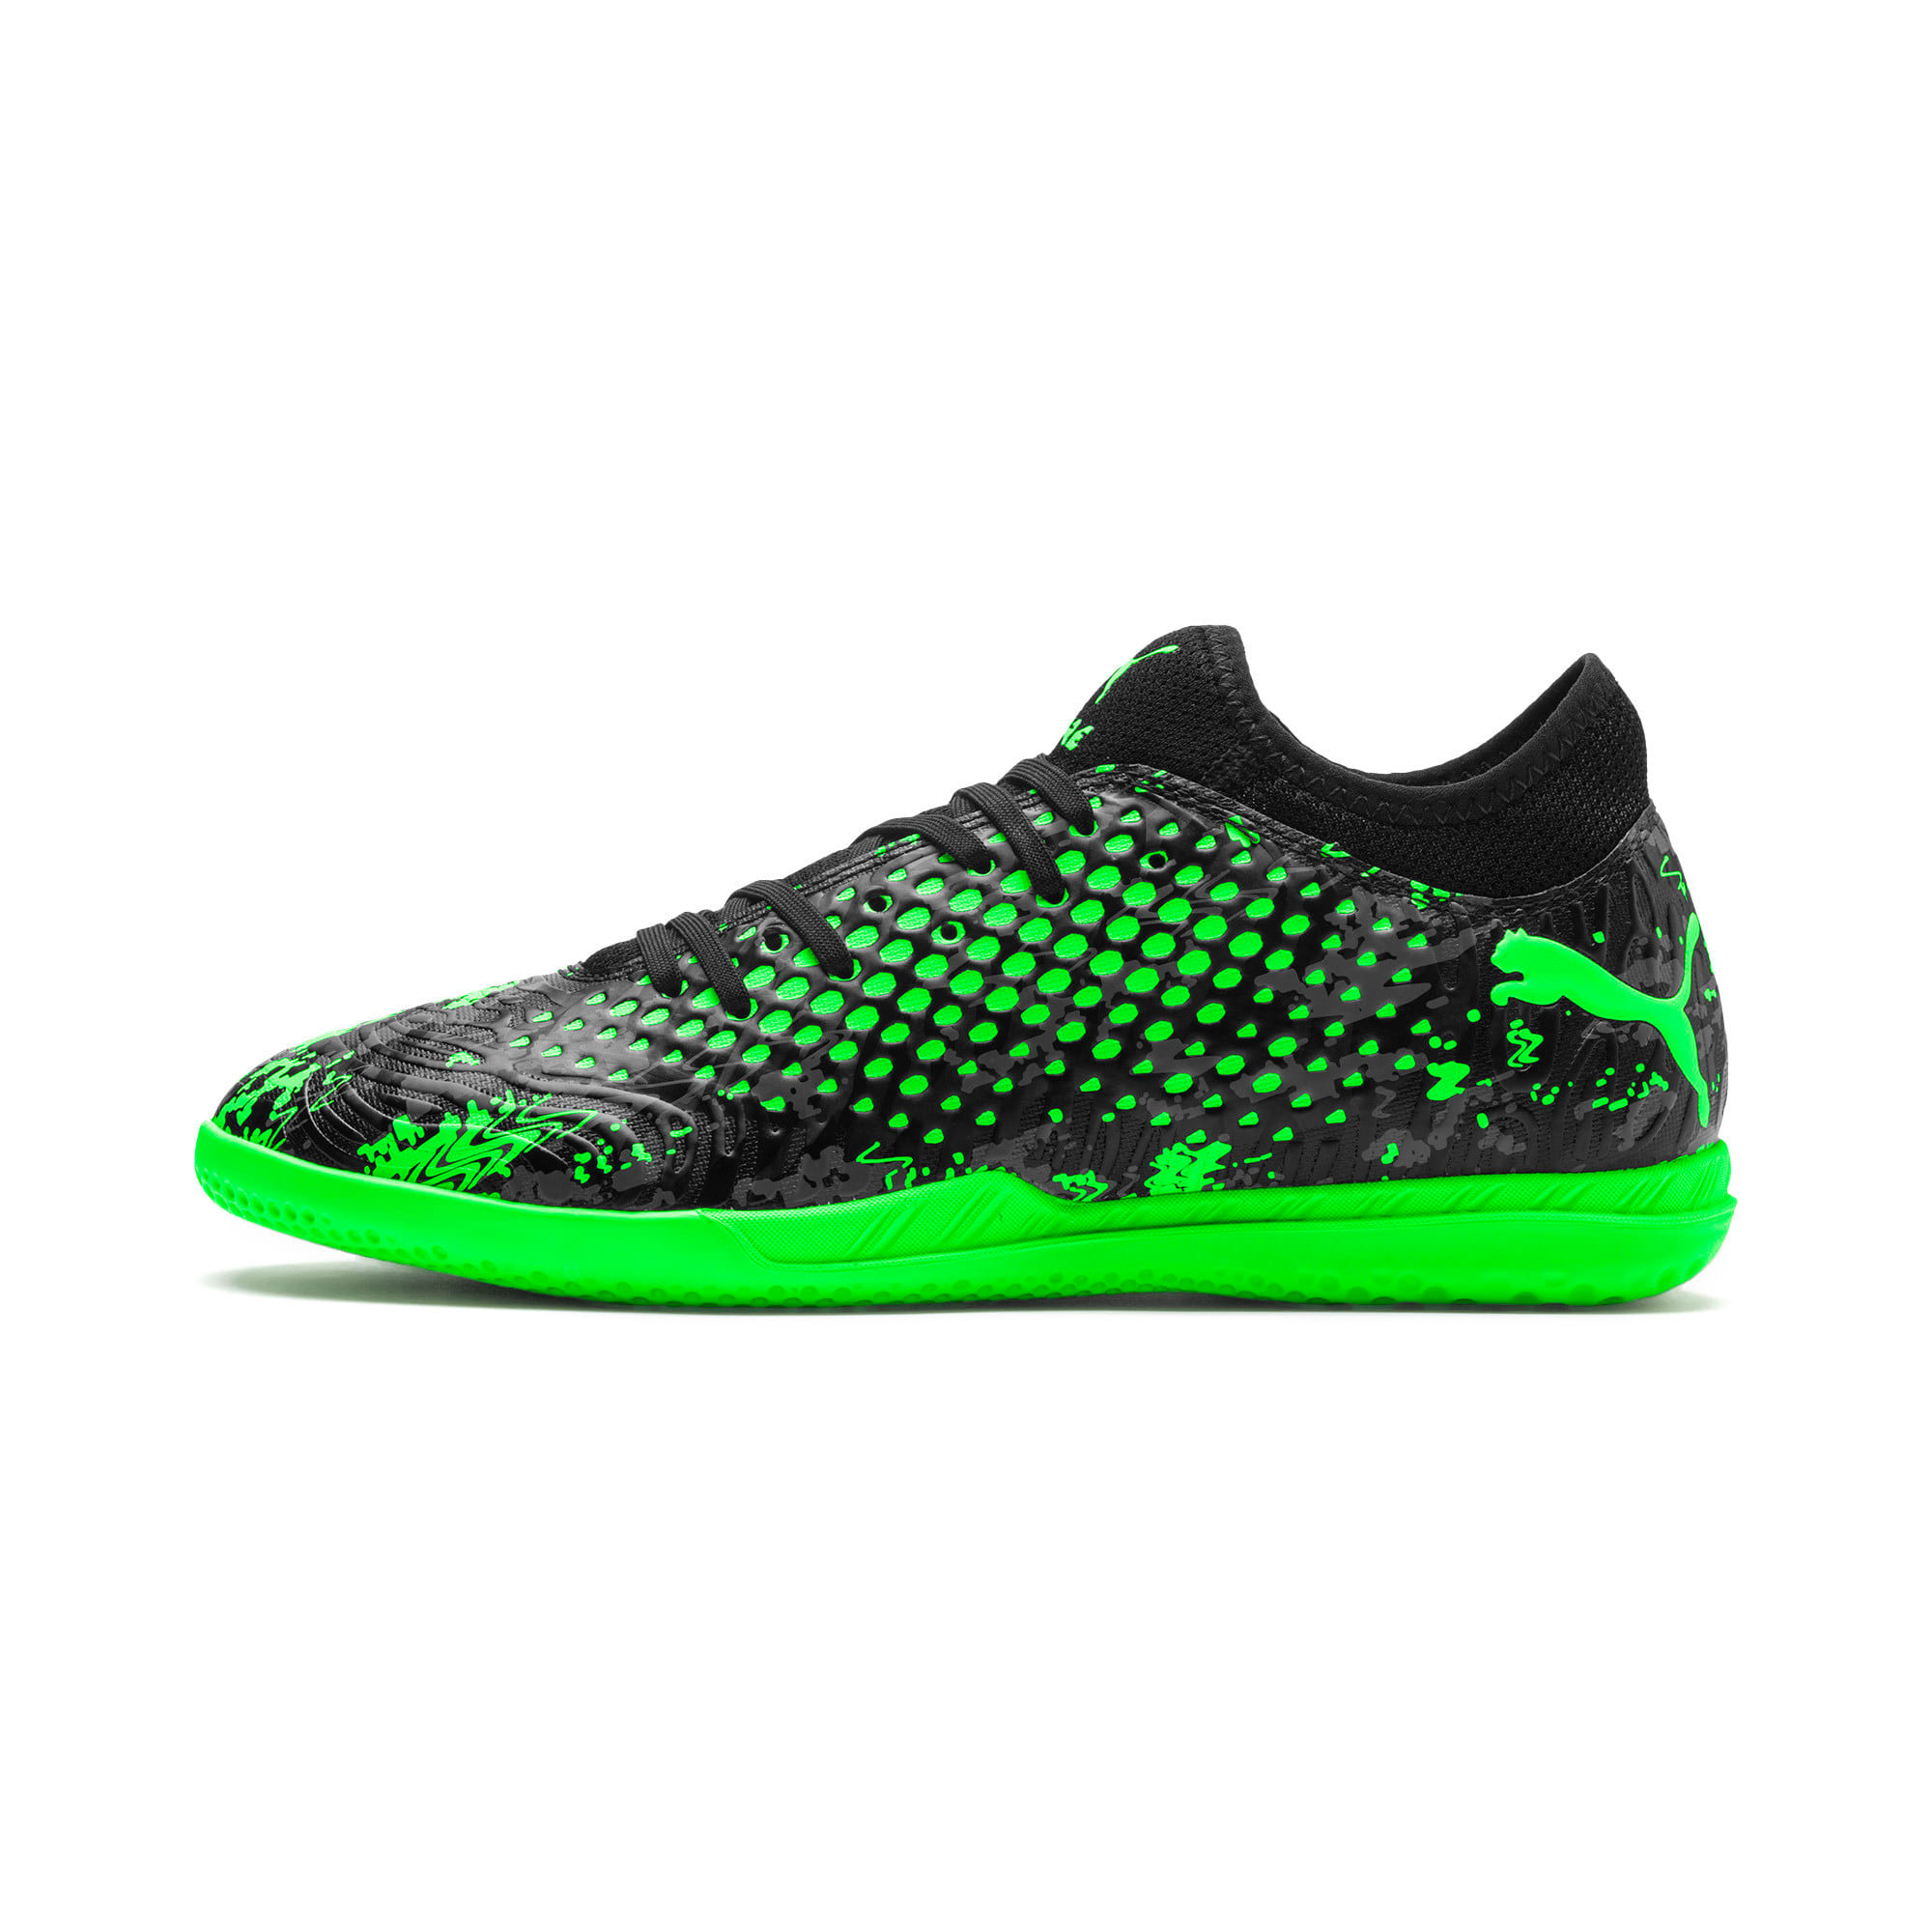 Thumbnail 1 of Chaussure de foot FUTURE 19.4 IT pour homme, Black-Gray-Green Gecko, medium